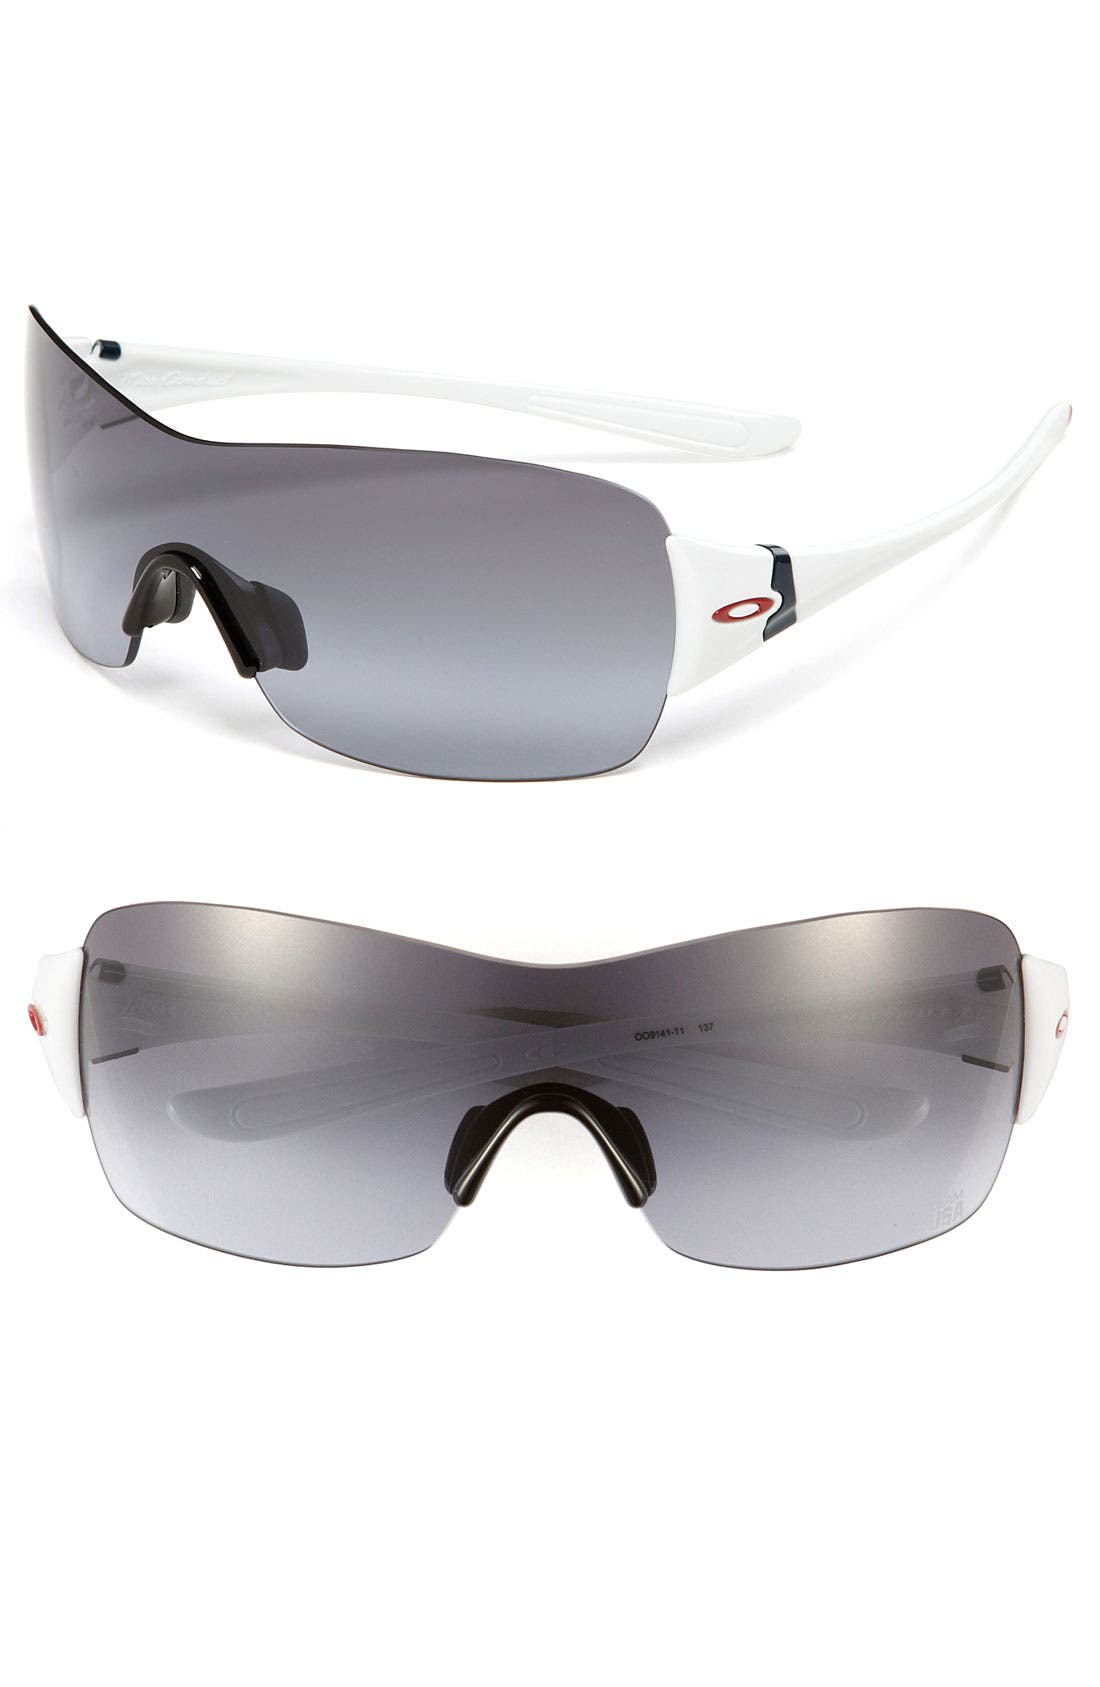 Main Image - Oakley 'Miss Conduct™ - Team USA' 137mm Rimless Shield Sunglasses